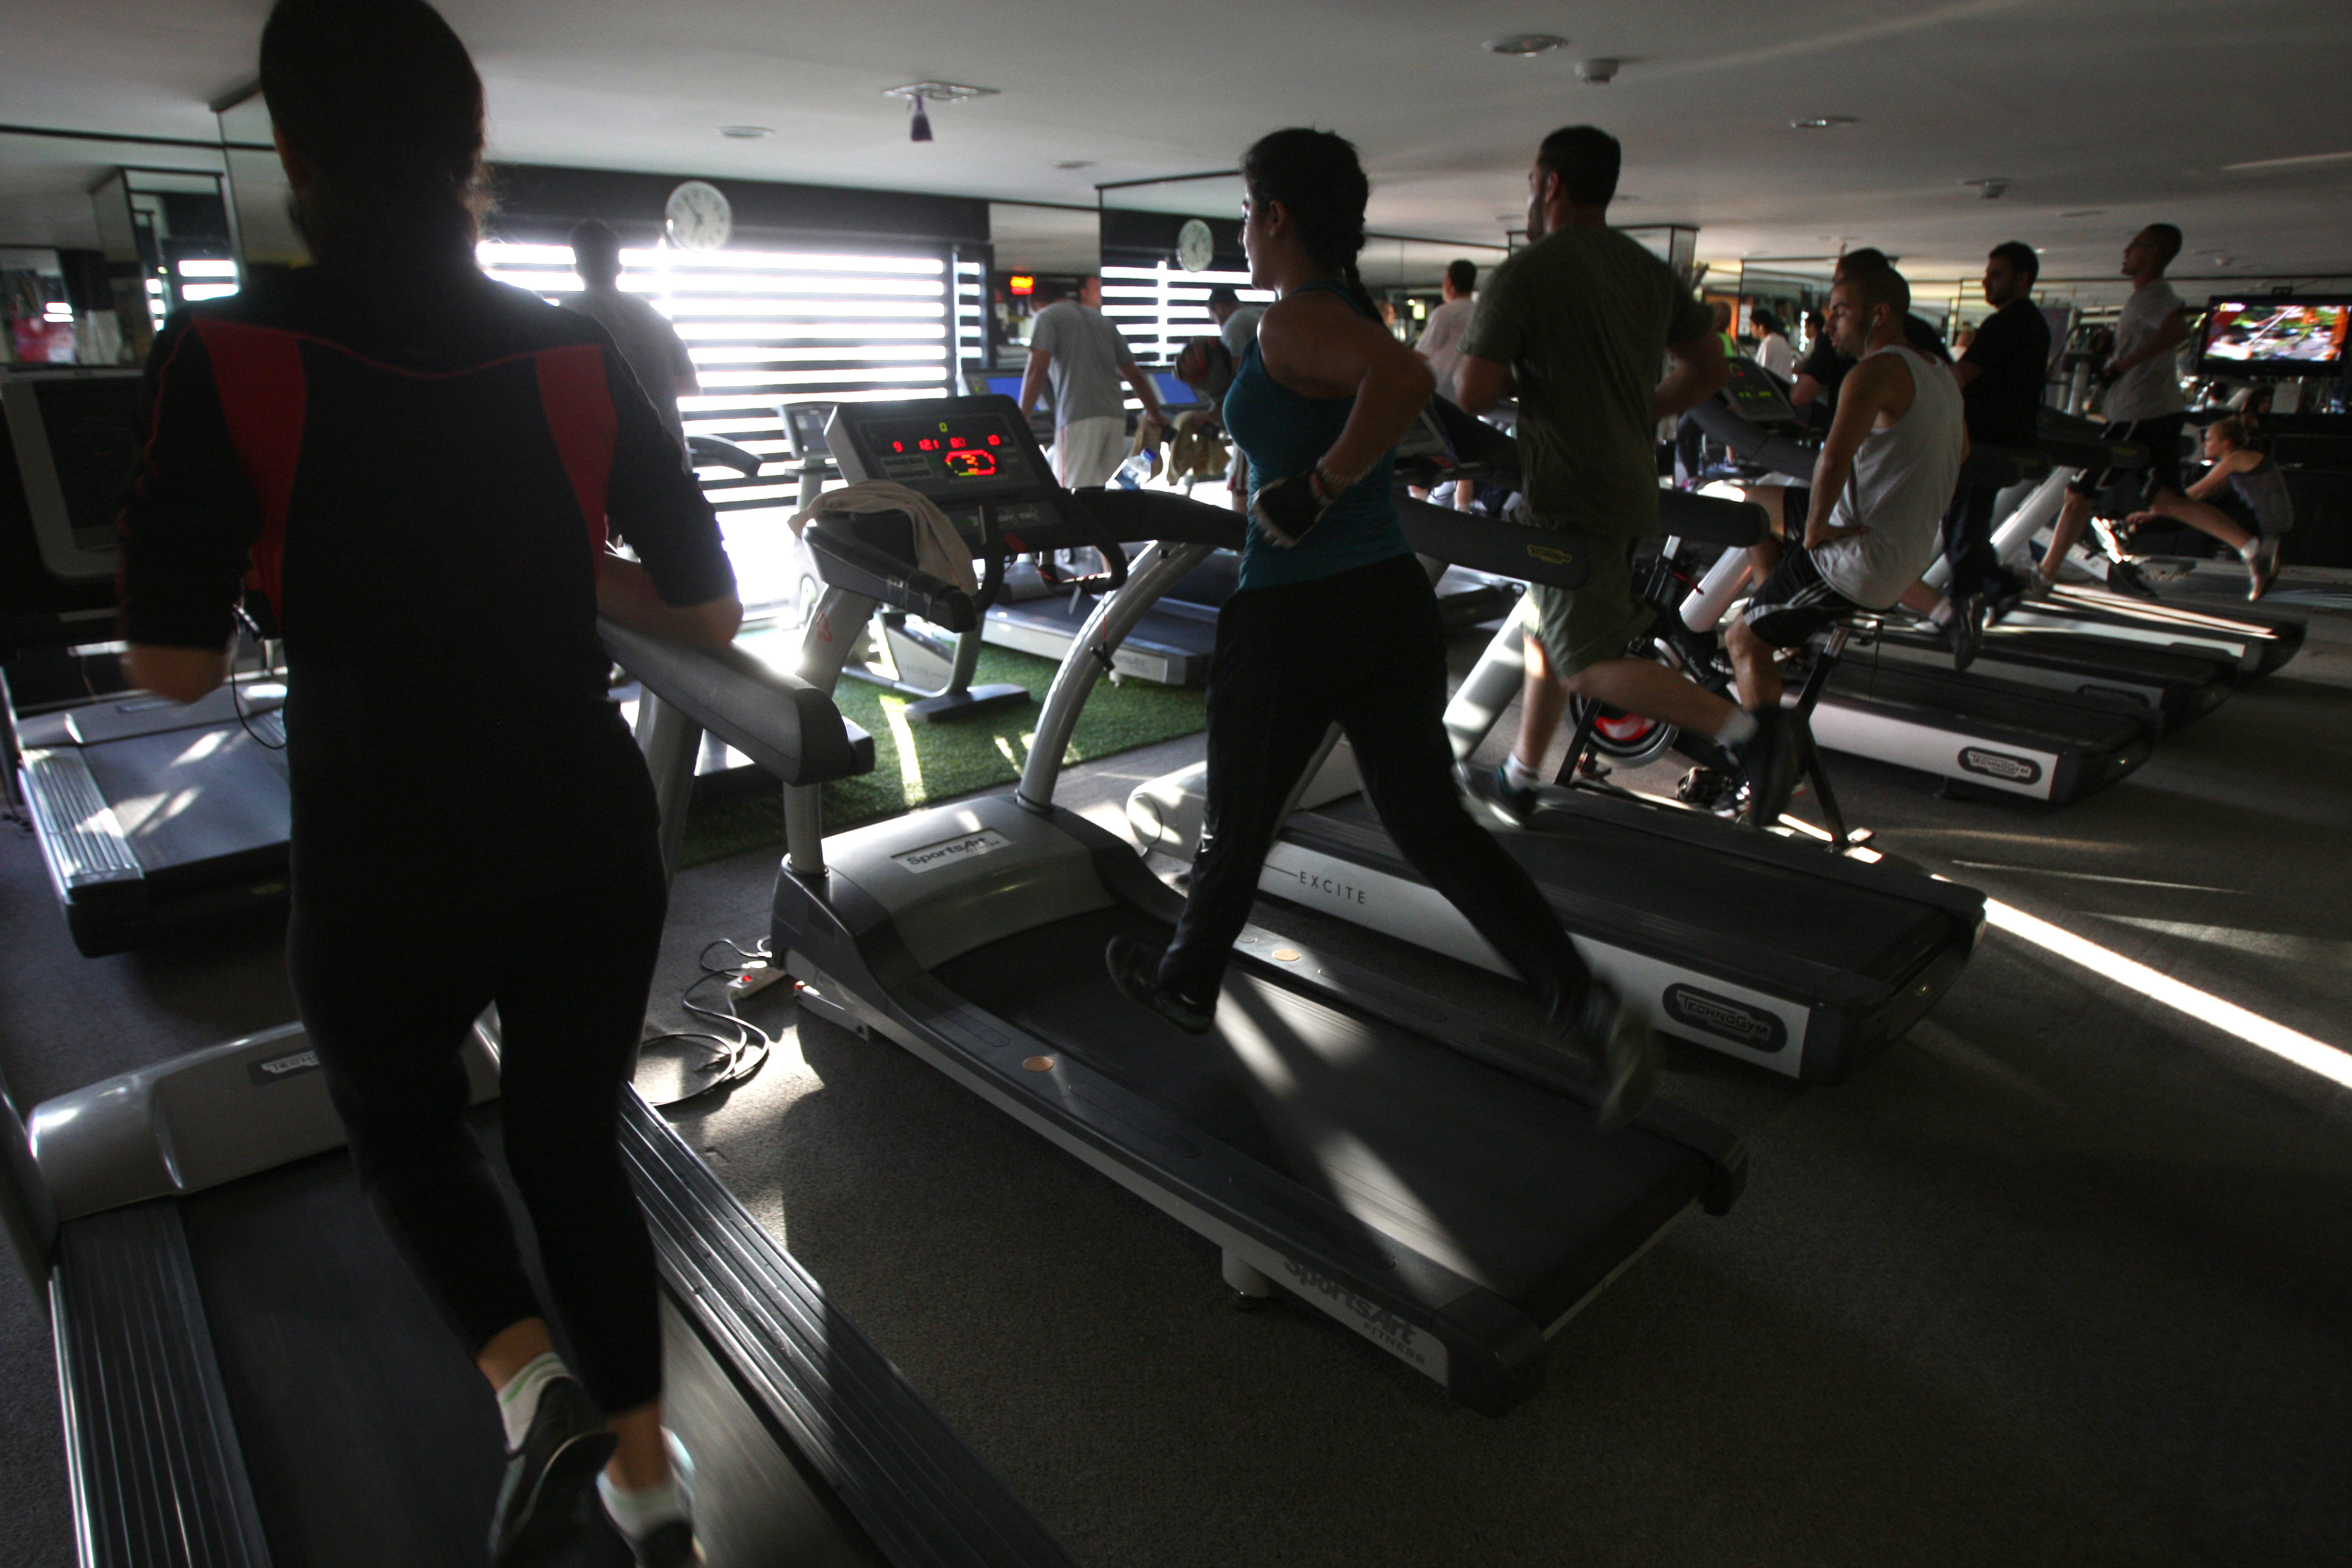 Men and women run on treadmills at a fitness gym in the West Bank city of Ramallah on June 25, 2012.